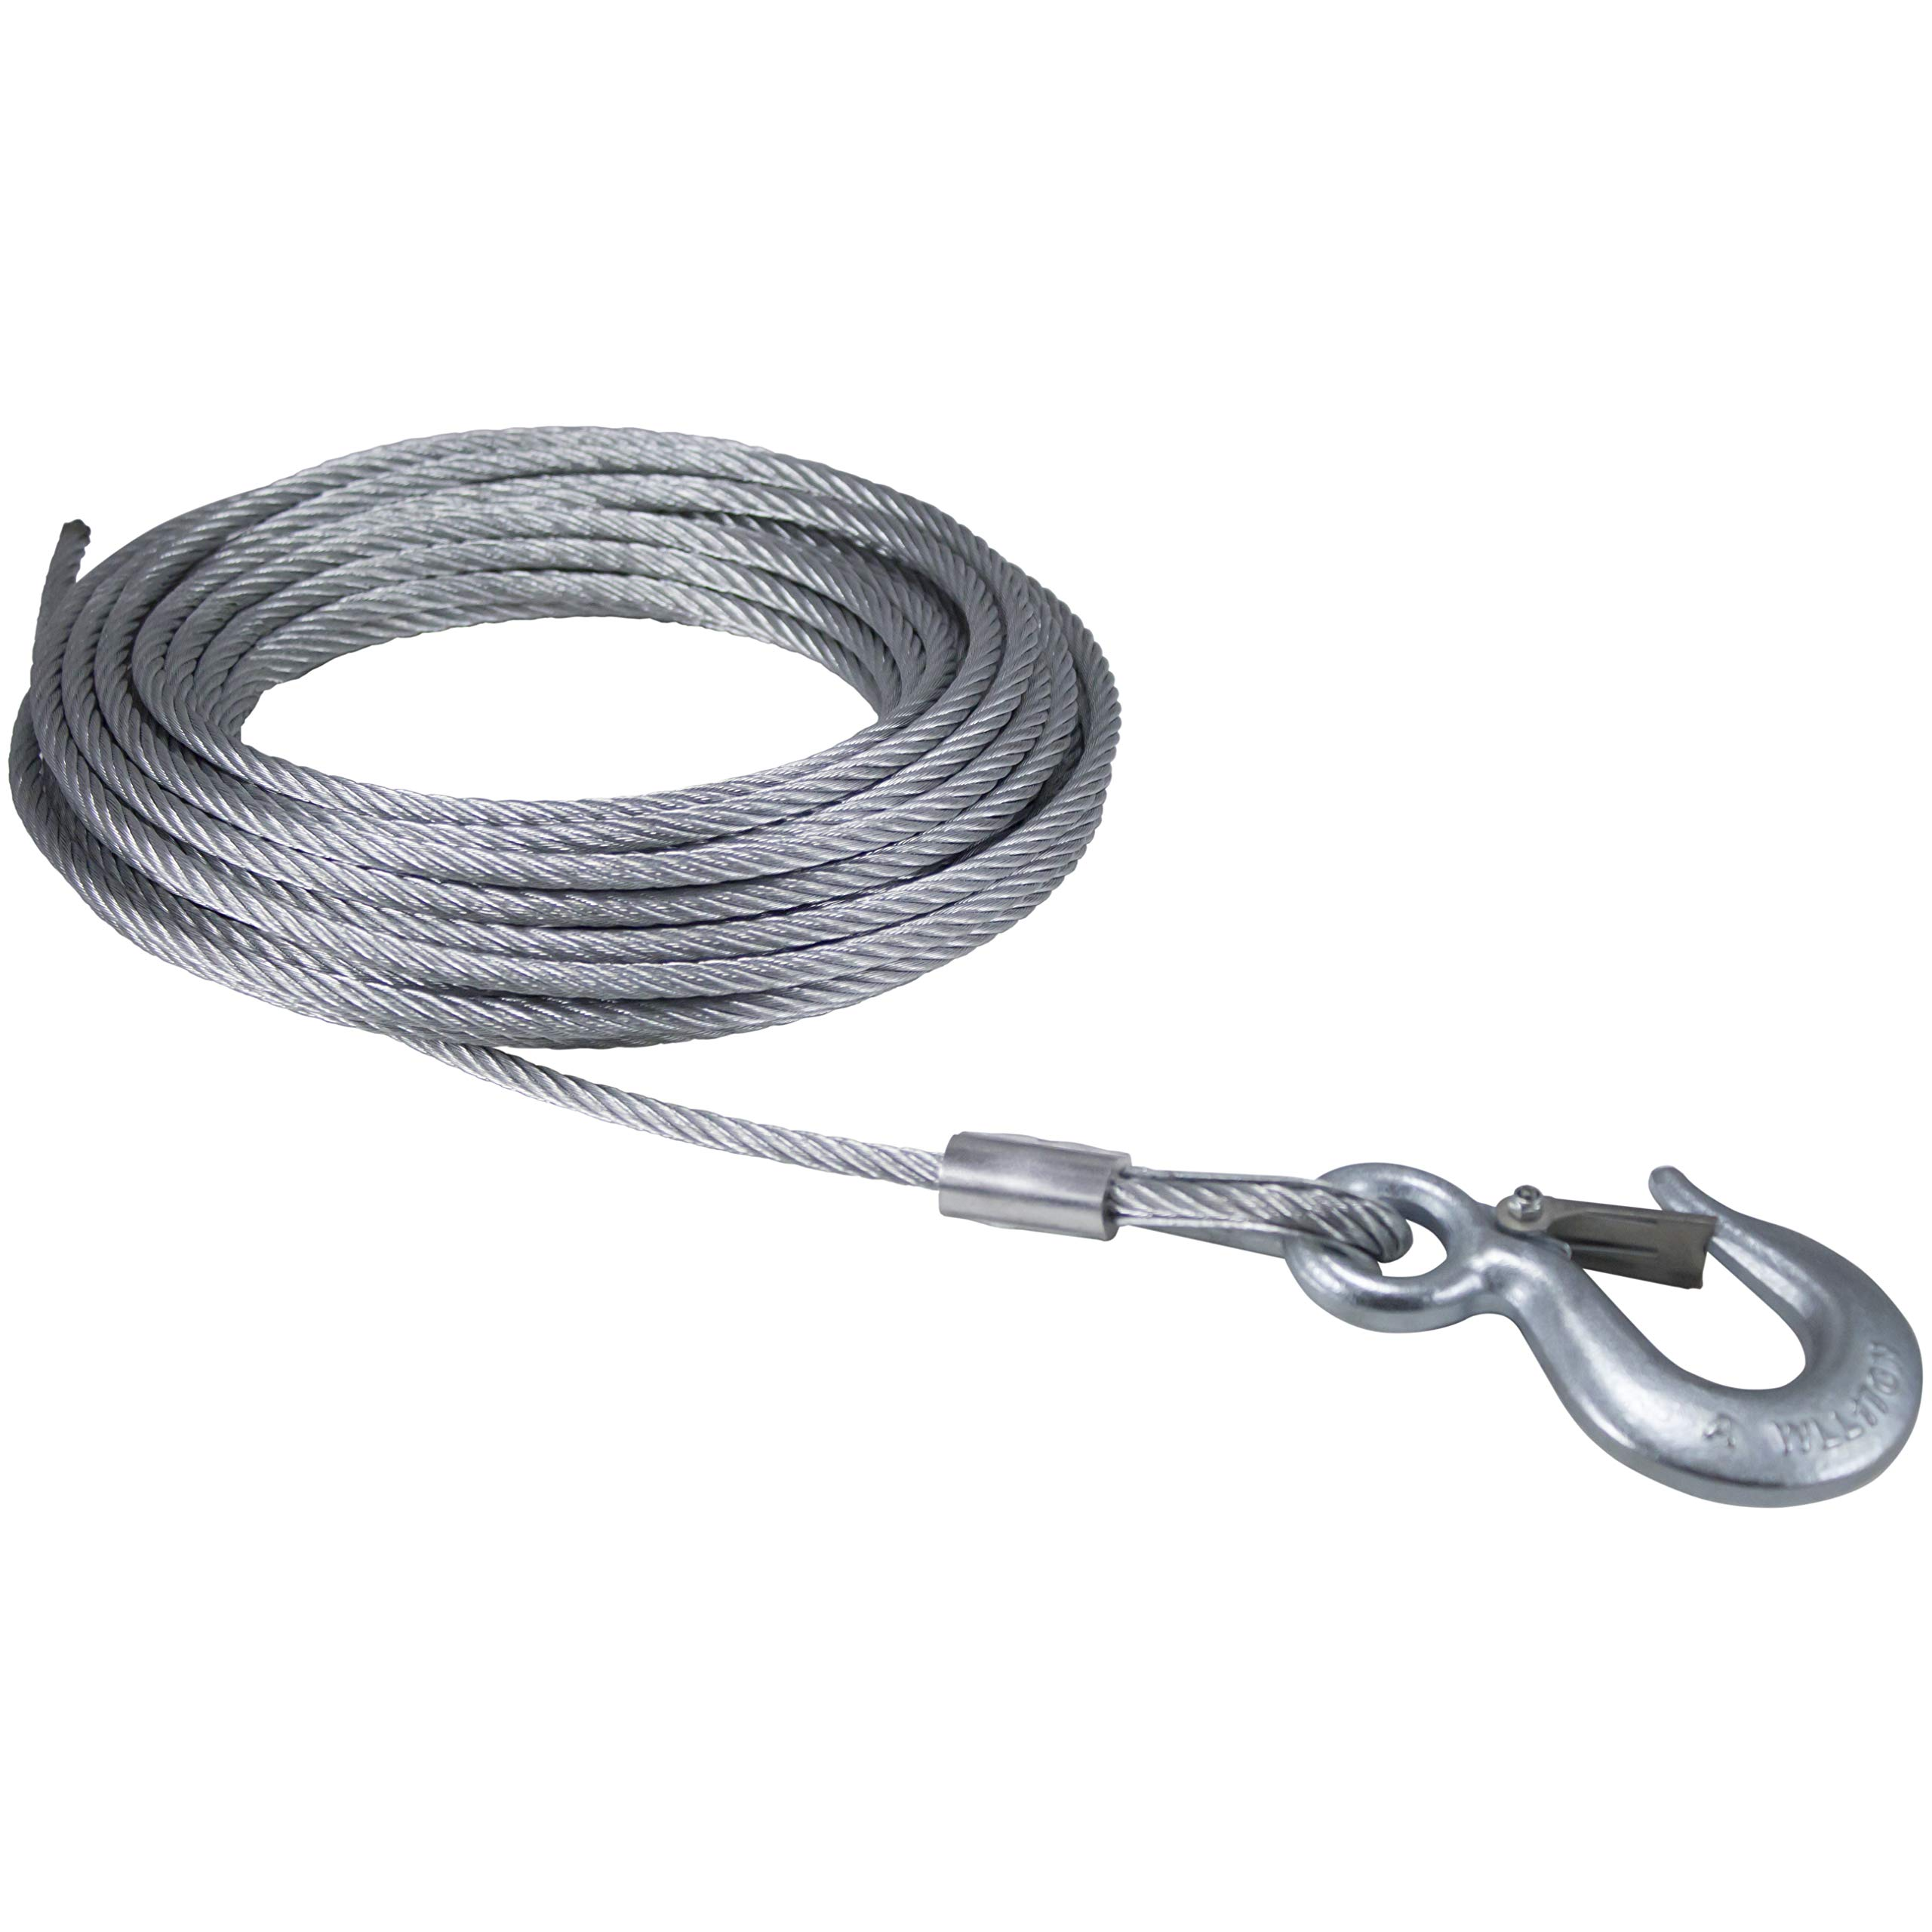 Goldenrod Dutton-Lainson 6524 Cable with Hook 1/4- Inch x 50- Feet by Goldenrod